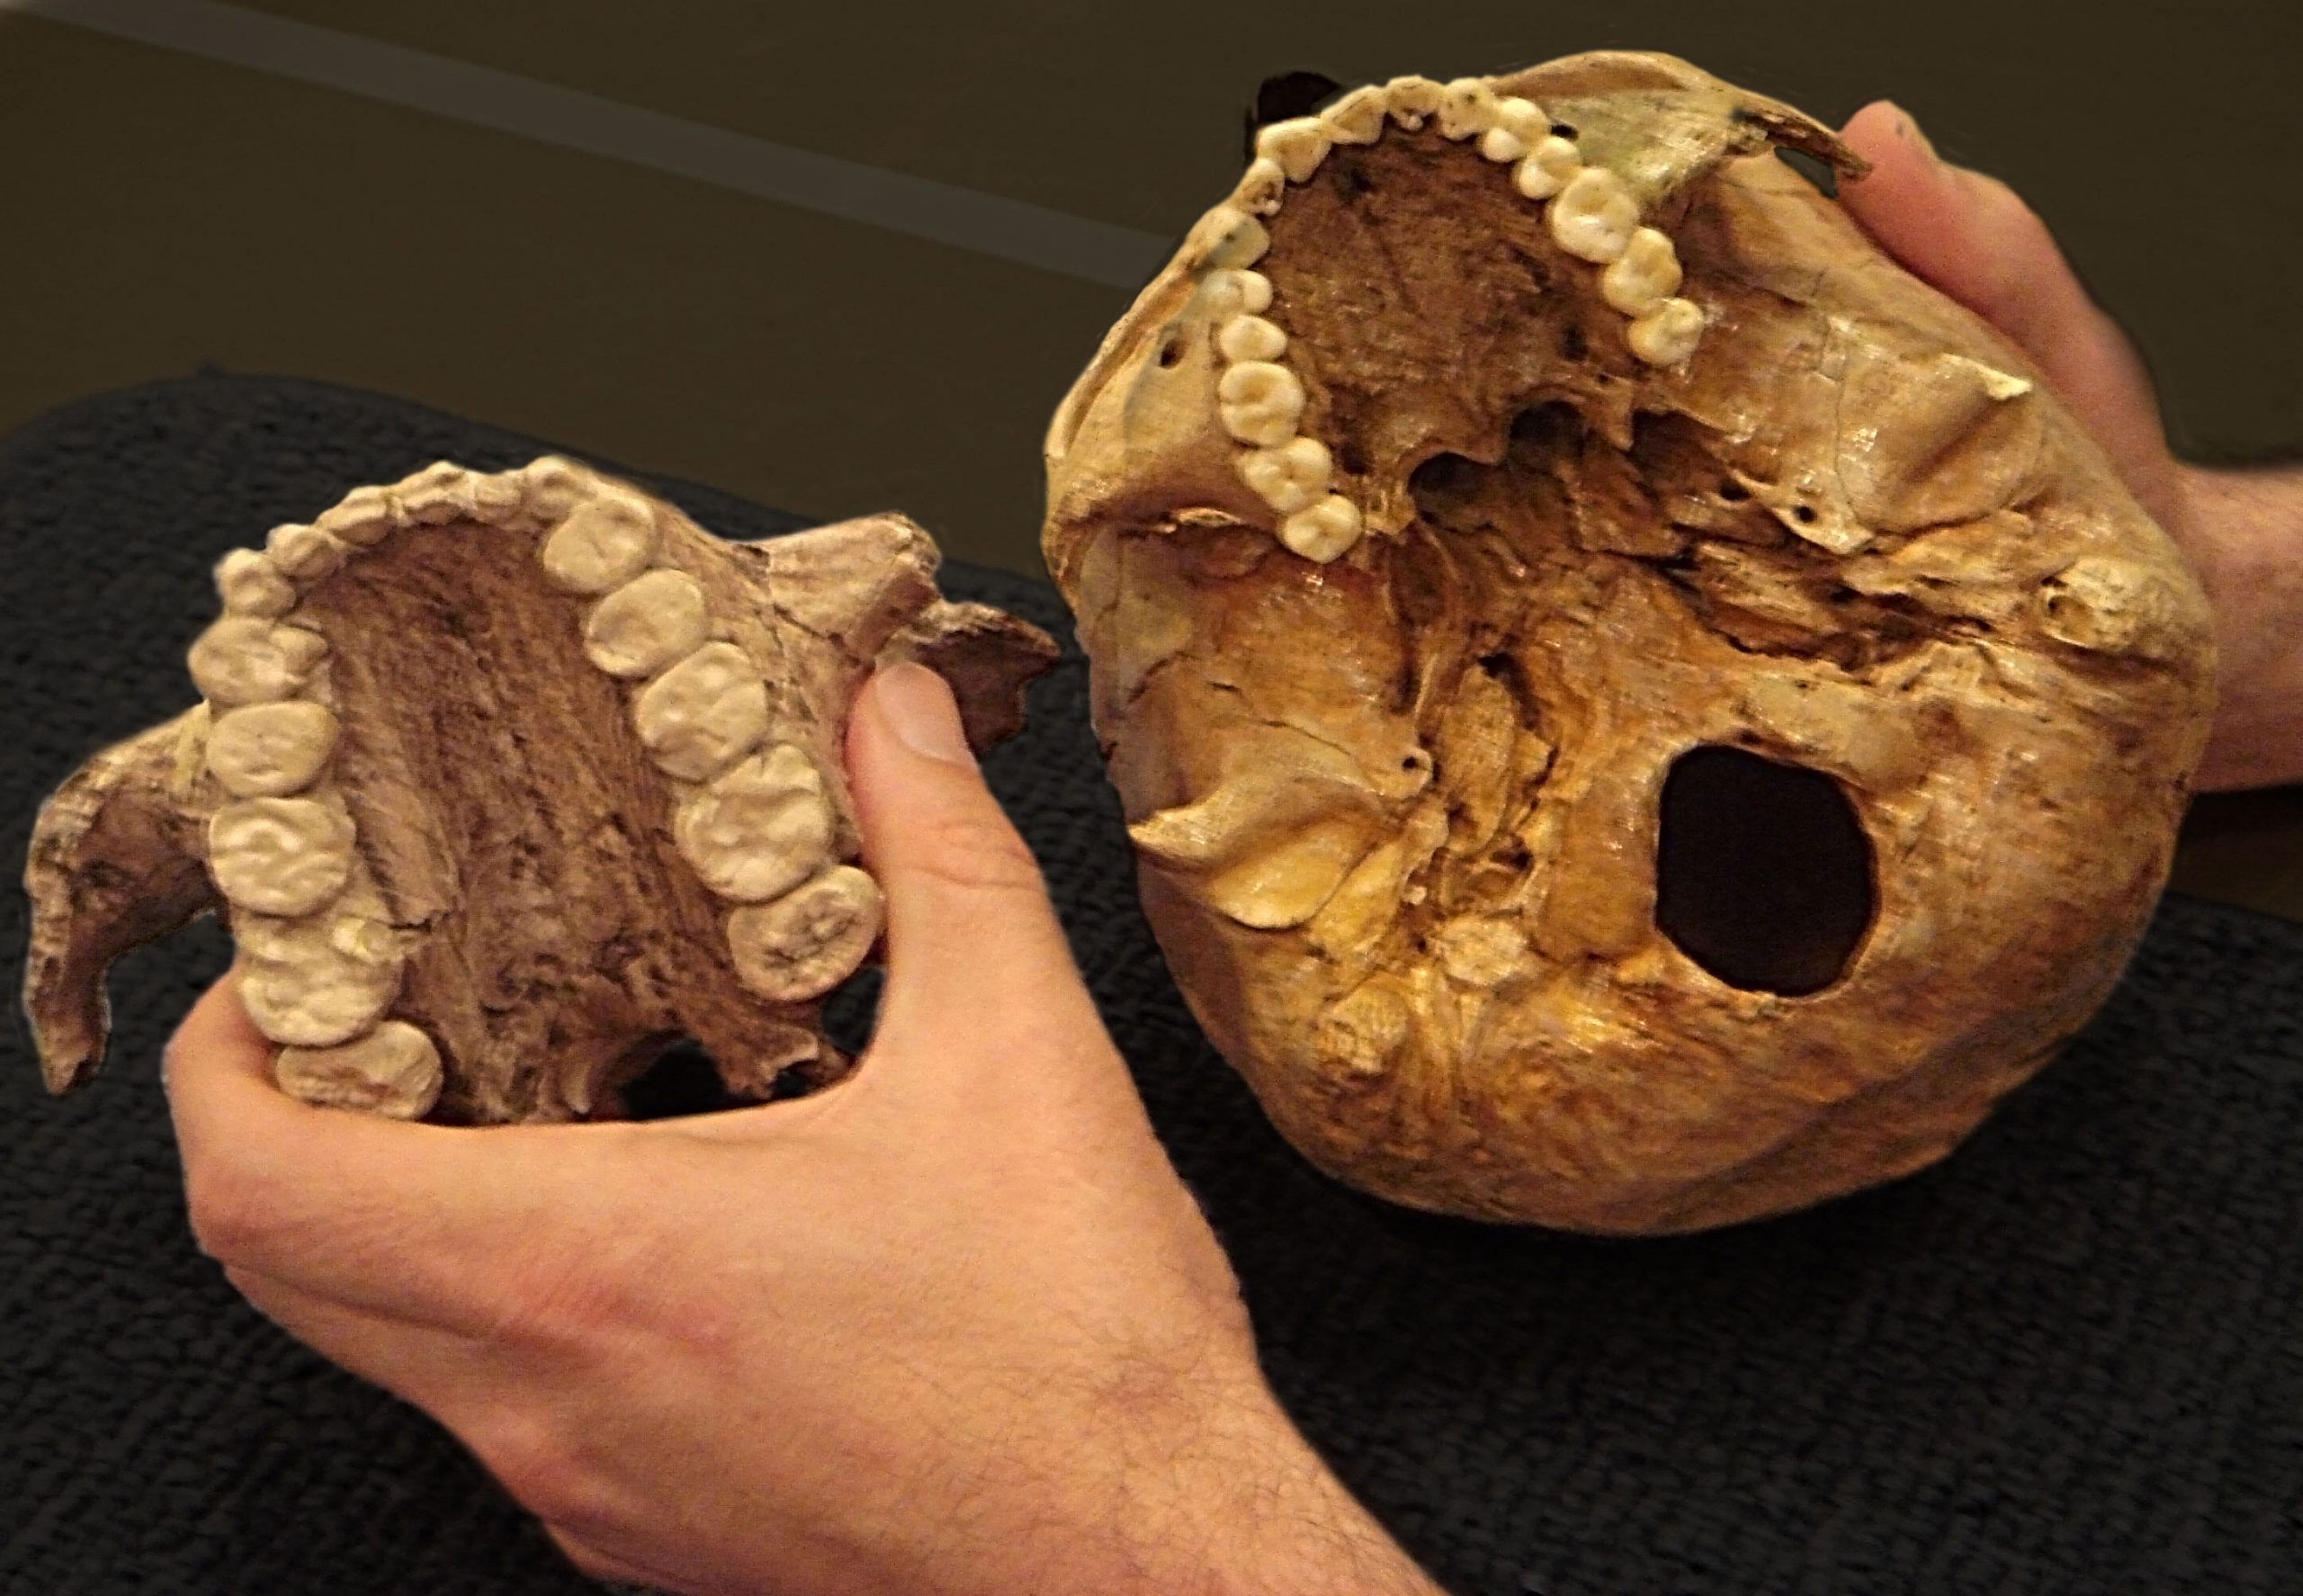 This photo of casts of two palates demonstrates the large size of the teeth of Paranthropus boisei (left), an early human relative that lived in East Africa between 2.3 million and 1.2 million years ago and was known as Nutcracker Man. Much smaller teeth from a human skull are shown on the right. A new study led by University of Utah researchers shows that Nutcracker Man didn't eat nuts as had been believed for decades, but instead used the large, flat teeth to chew grasses or plants known as sedges.